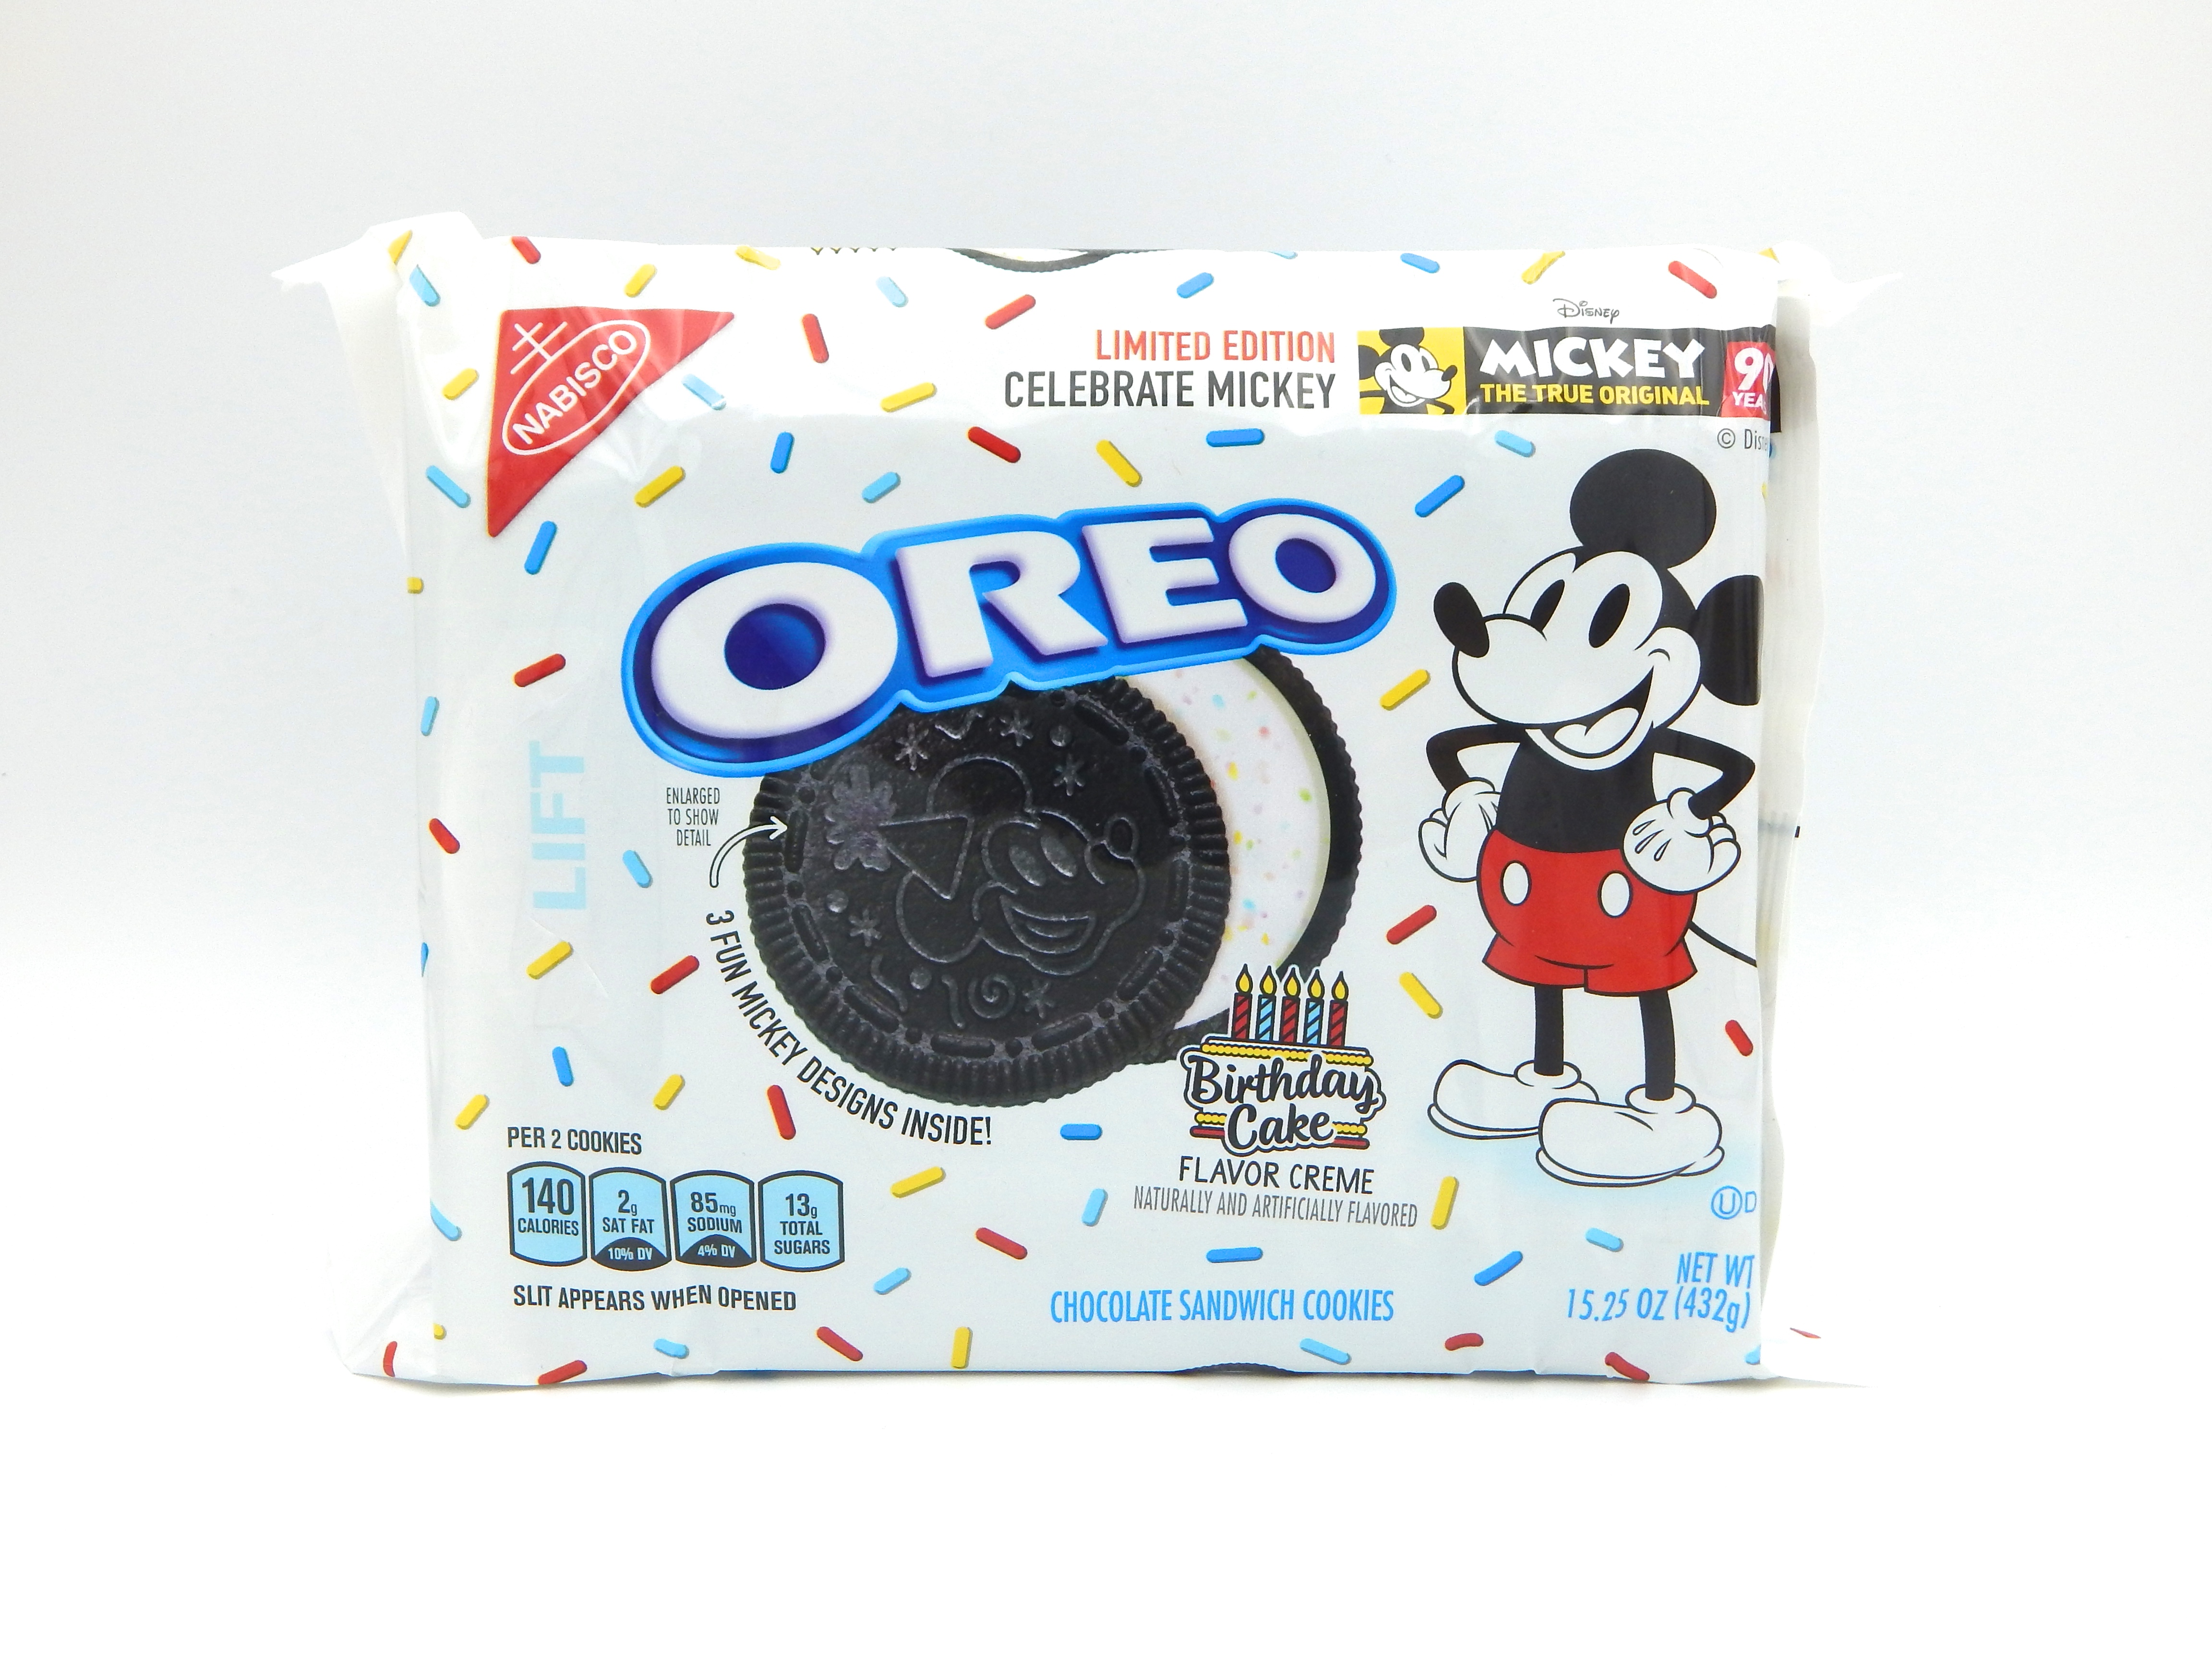 Review Nabisco Limited Edition Celebrate Mickey Oreos Monday Night